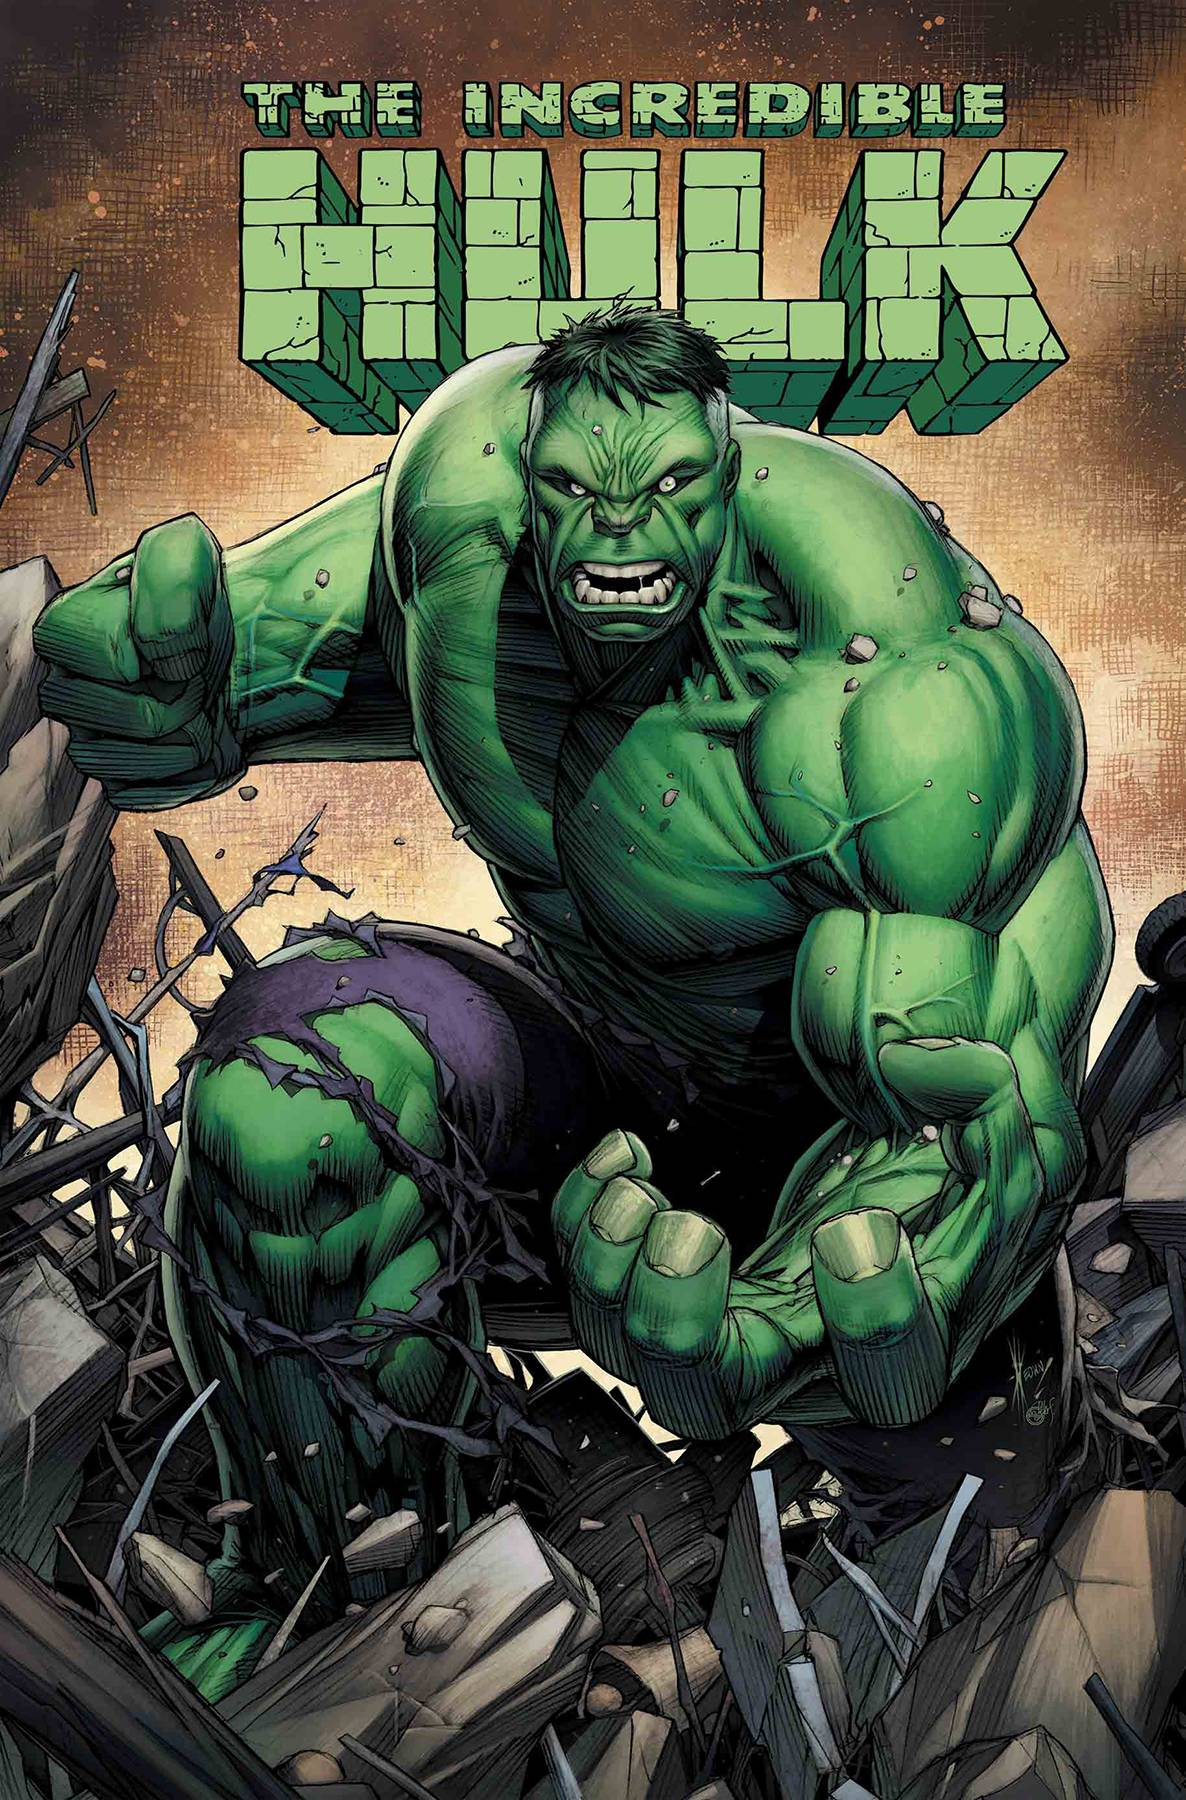 Incredible Hulk Last Call #1 Pre-Order